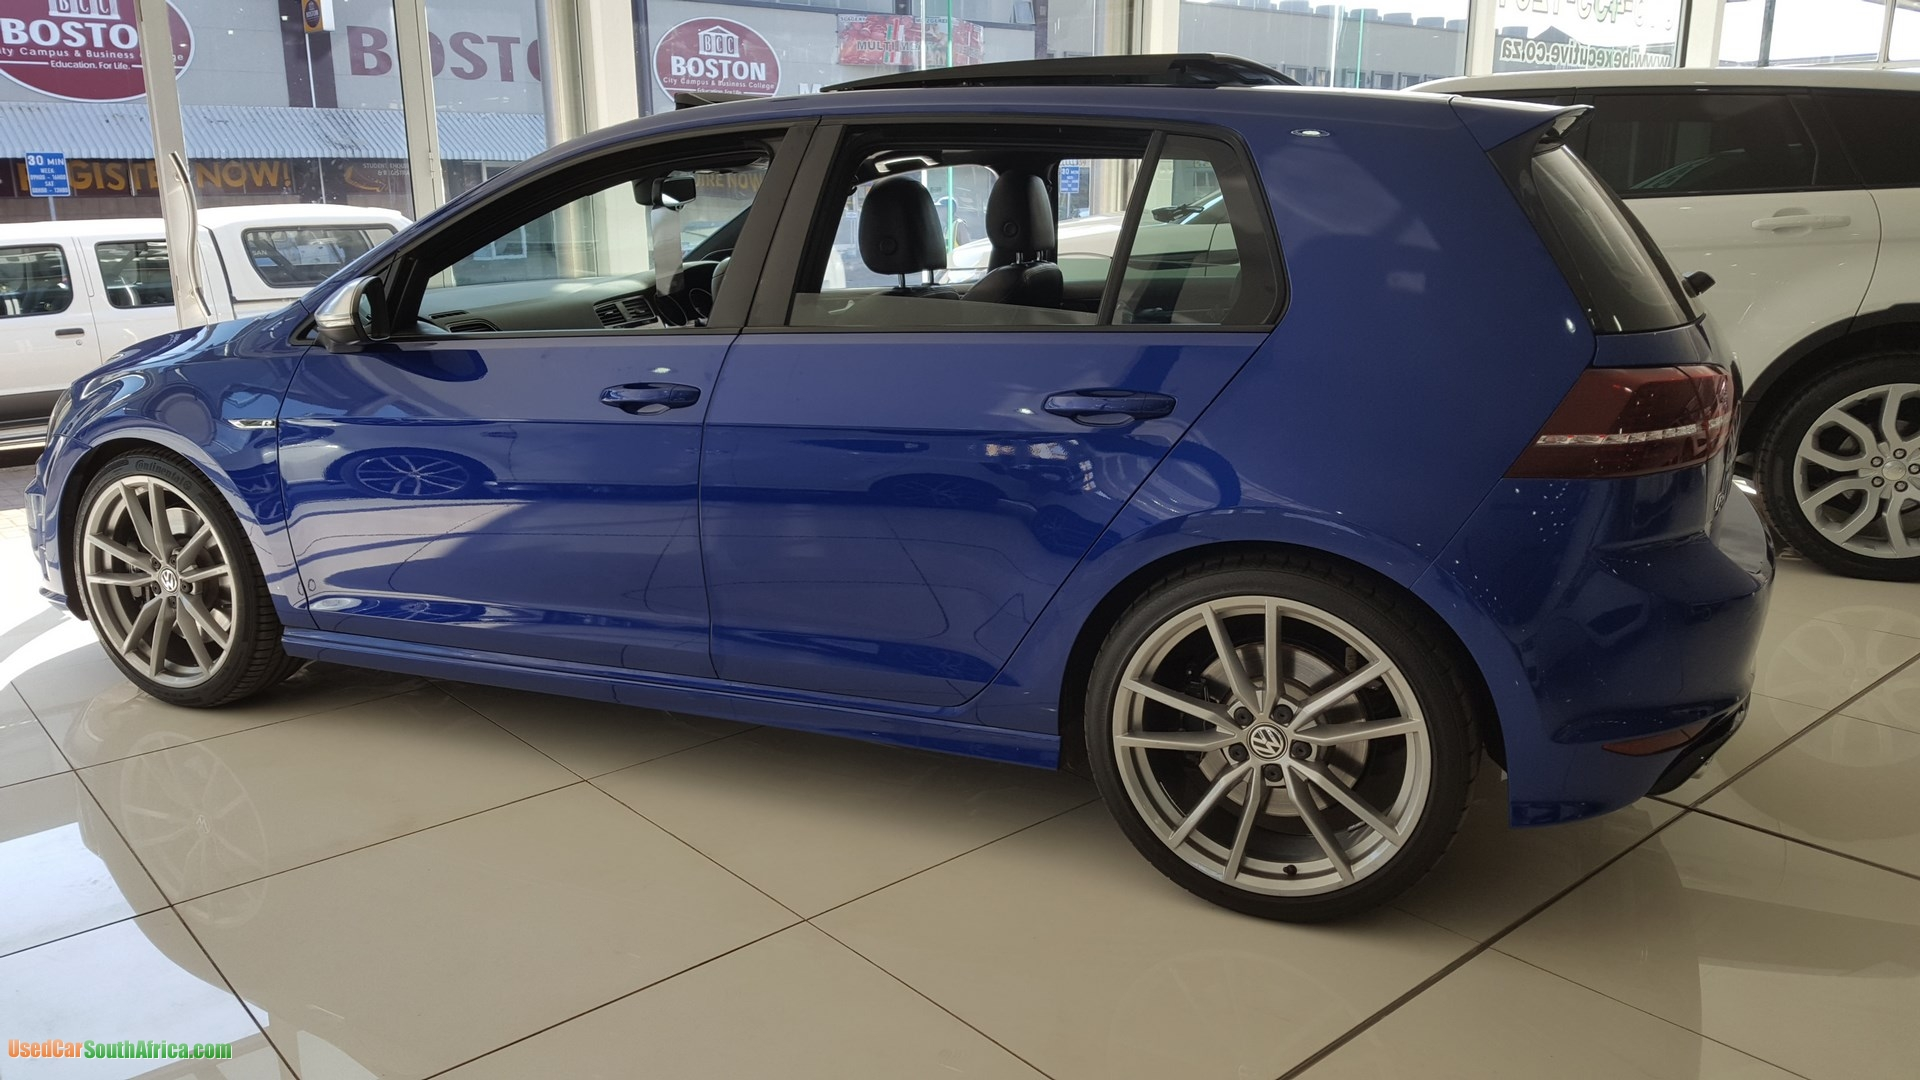 2016 volkswagen golf leather used car for sale in vereeniging gauteng south africa usedcarsouthafrica 0